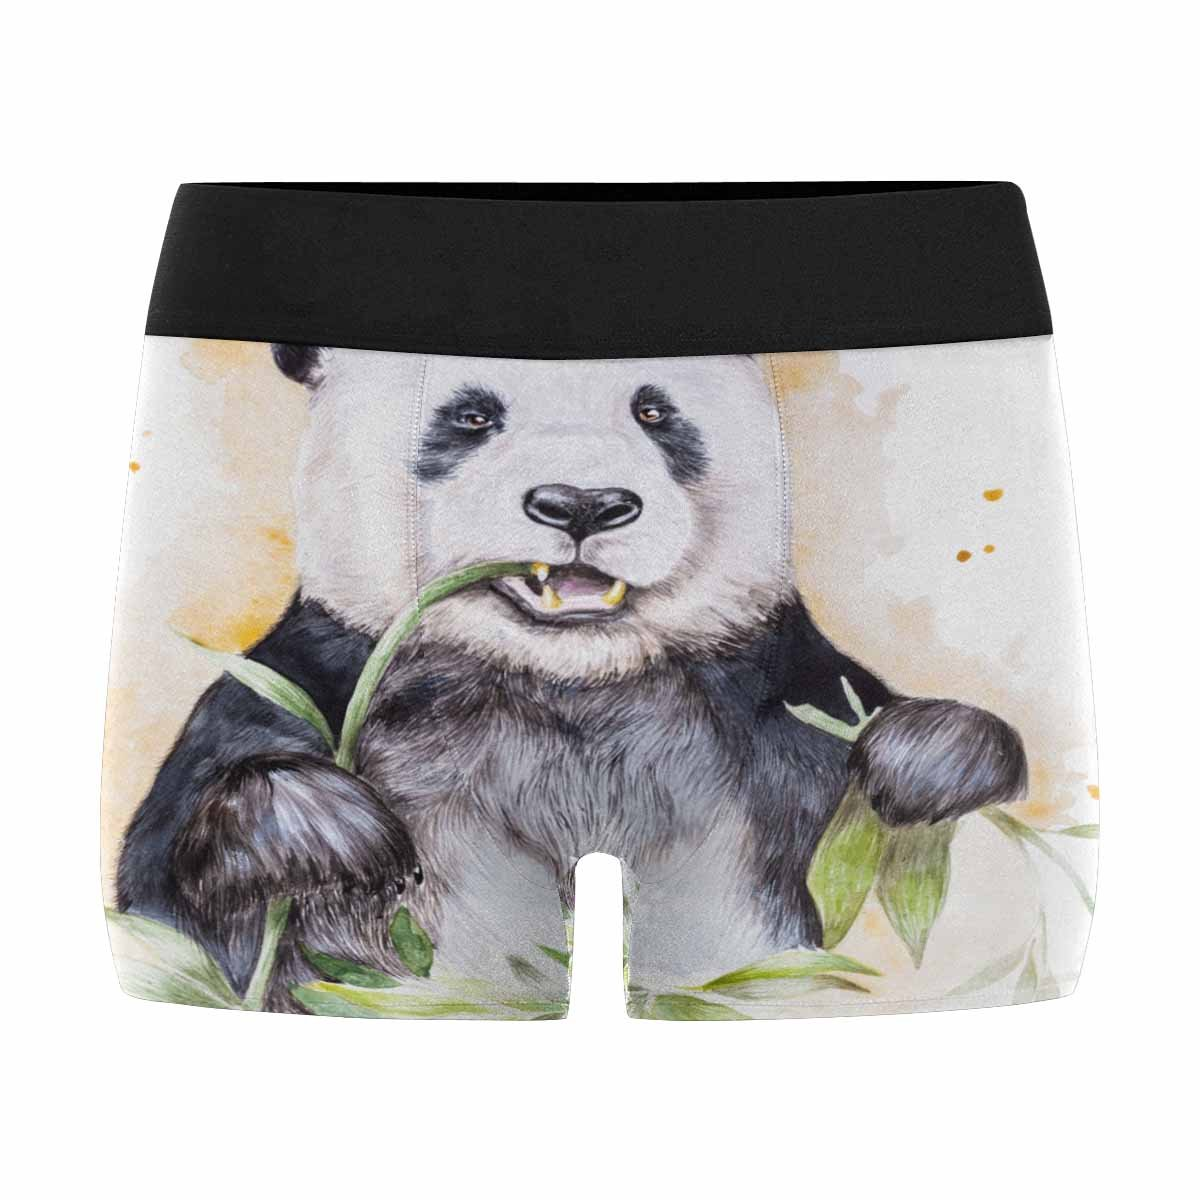 INTERESTPRINT Custom Mens Boxer Briefs Water Color Painting of A Giant Panda Eating Bamboo Leaves XS-3XL